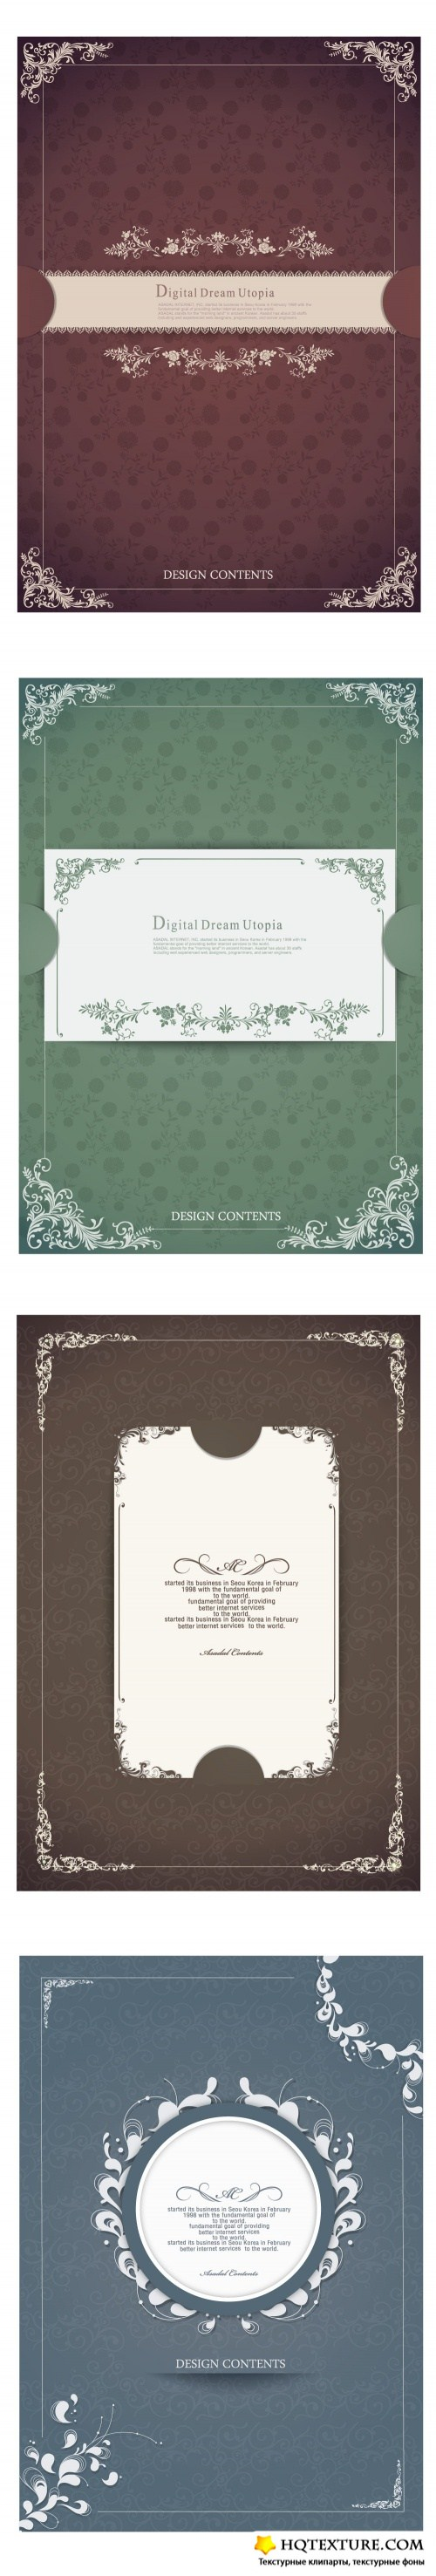 Vintage frames and backgrounds 4